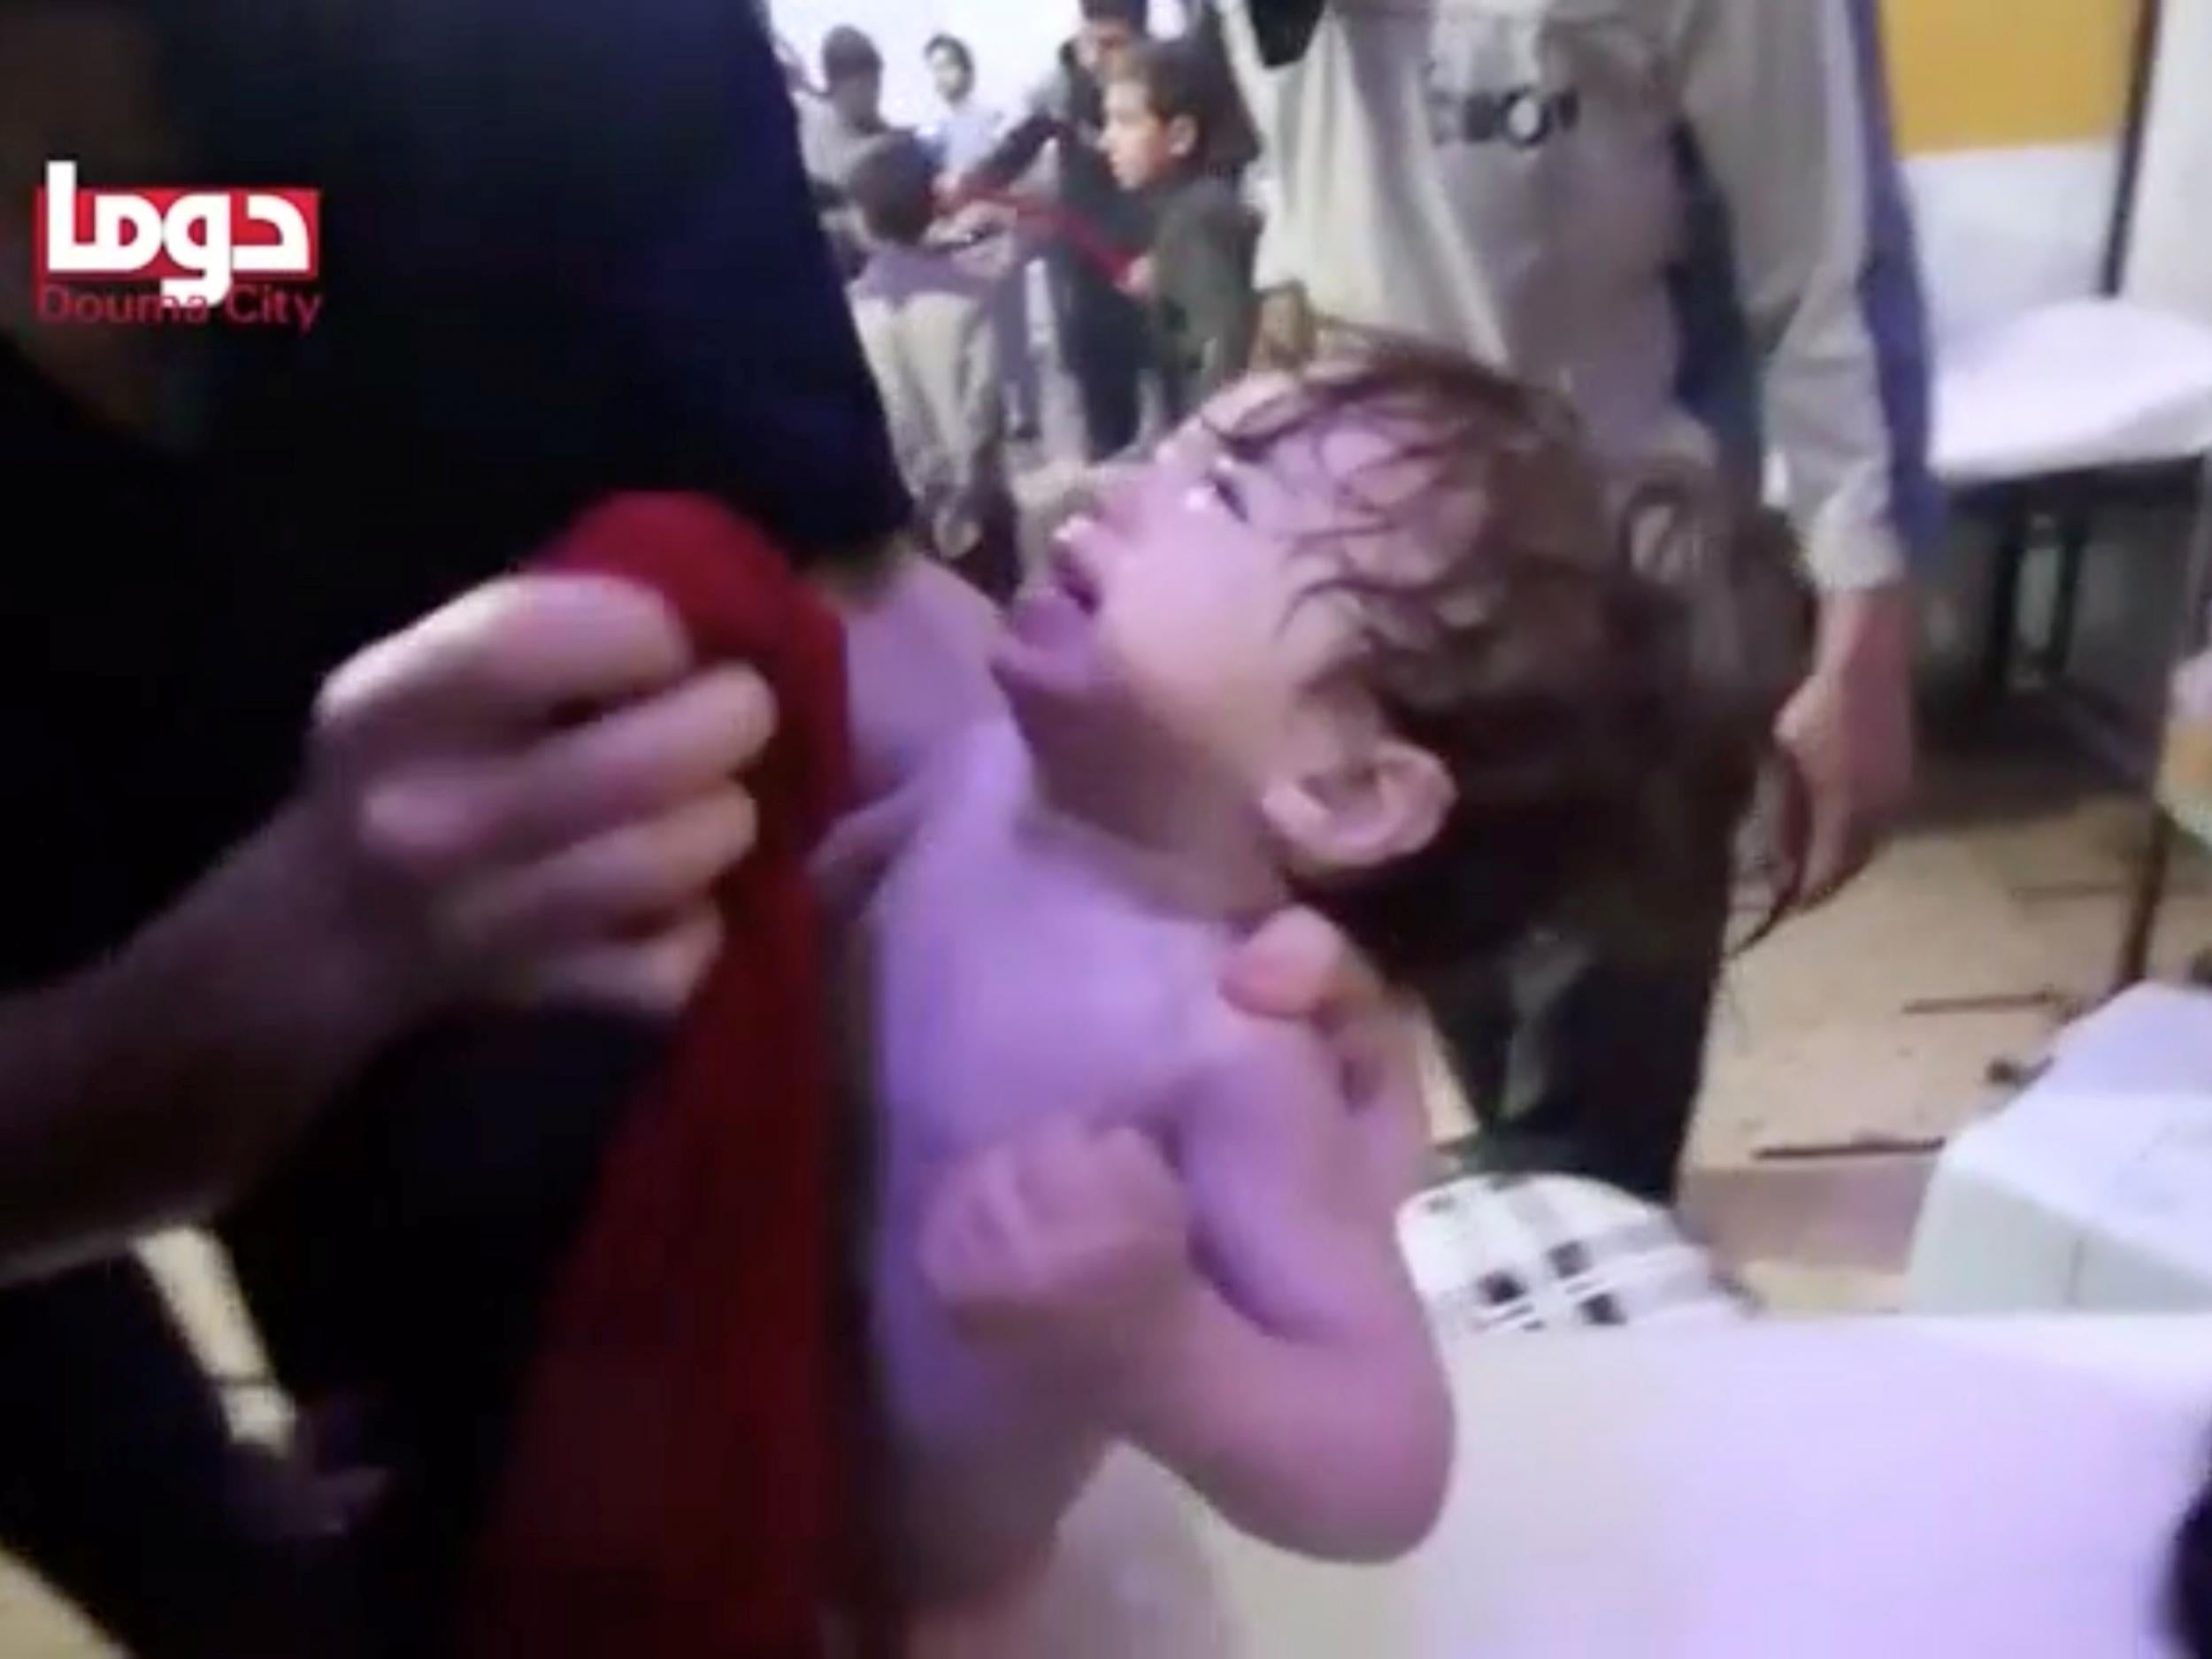 Eastern Ghouta - latest news, breaking stories and comment